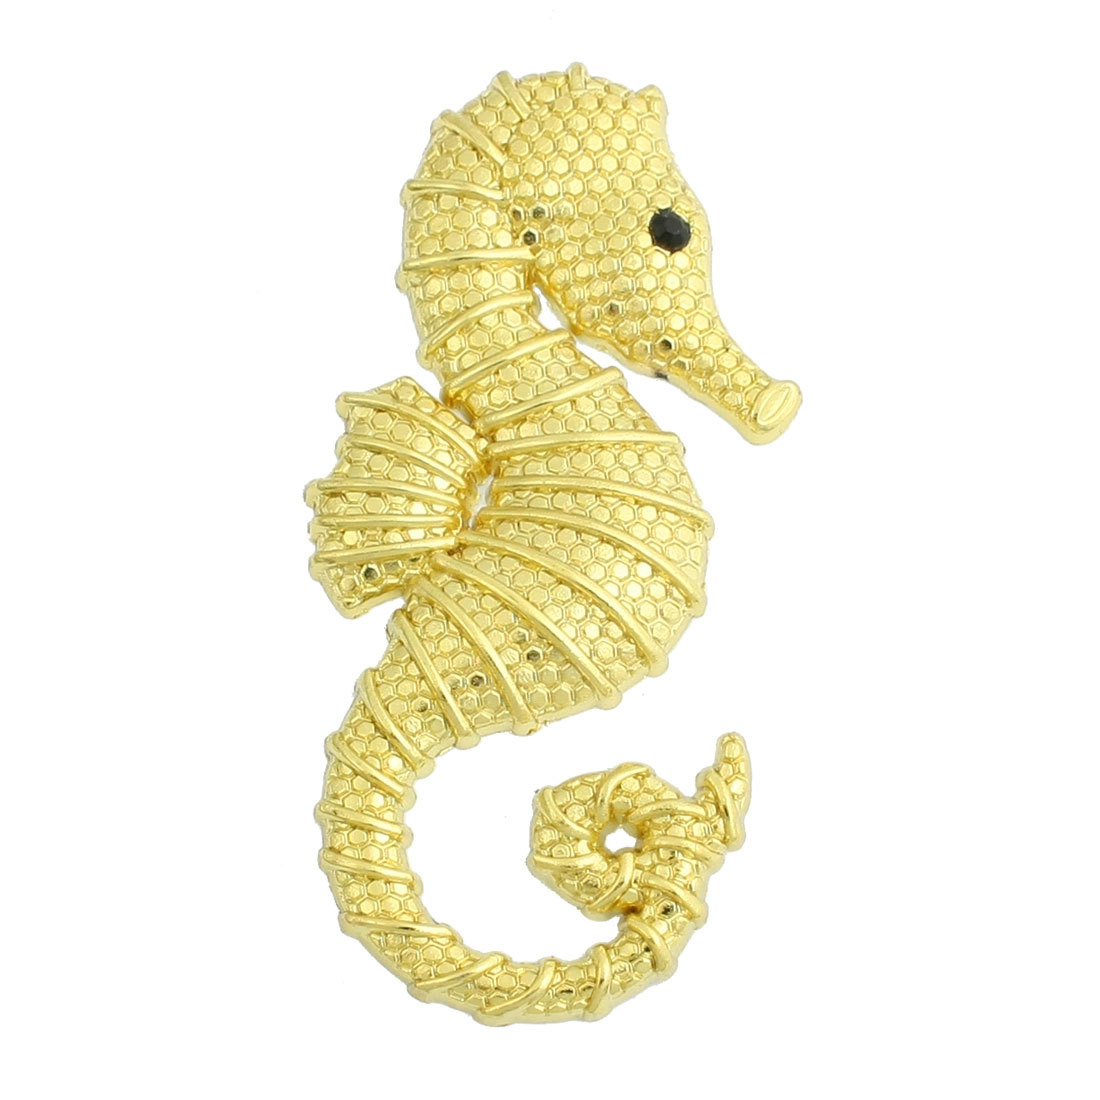 Sea Horse Design Decal Sticker Gold Tone for Auto Car